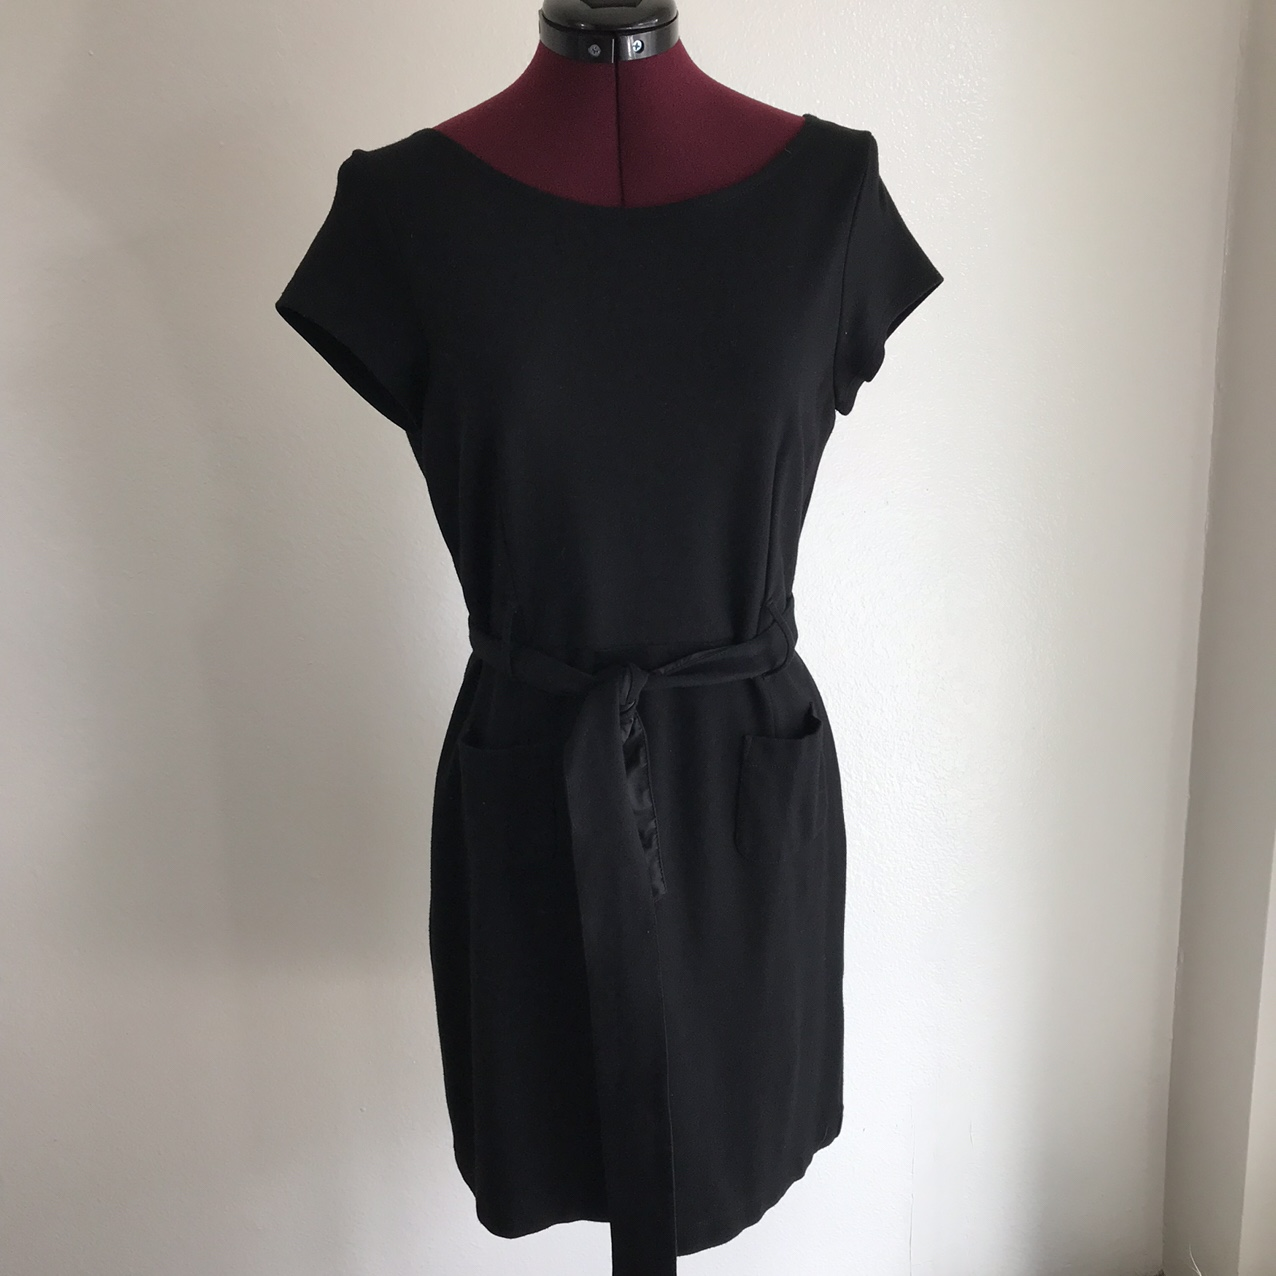 Product Image 1 - 1990s jersey knit black knee